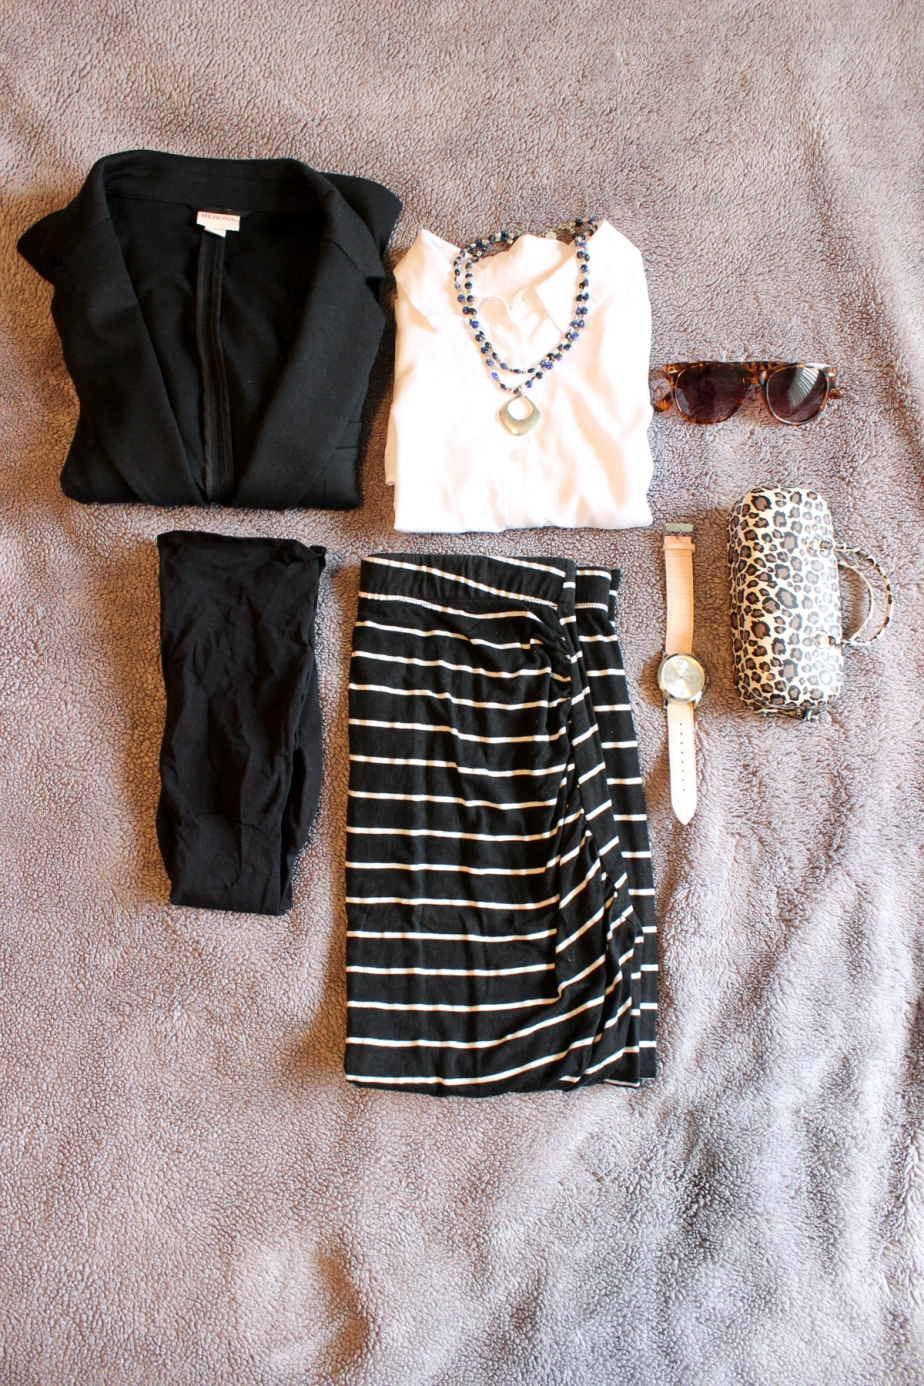 dressy-outfit-layers